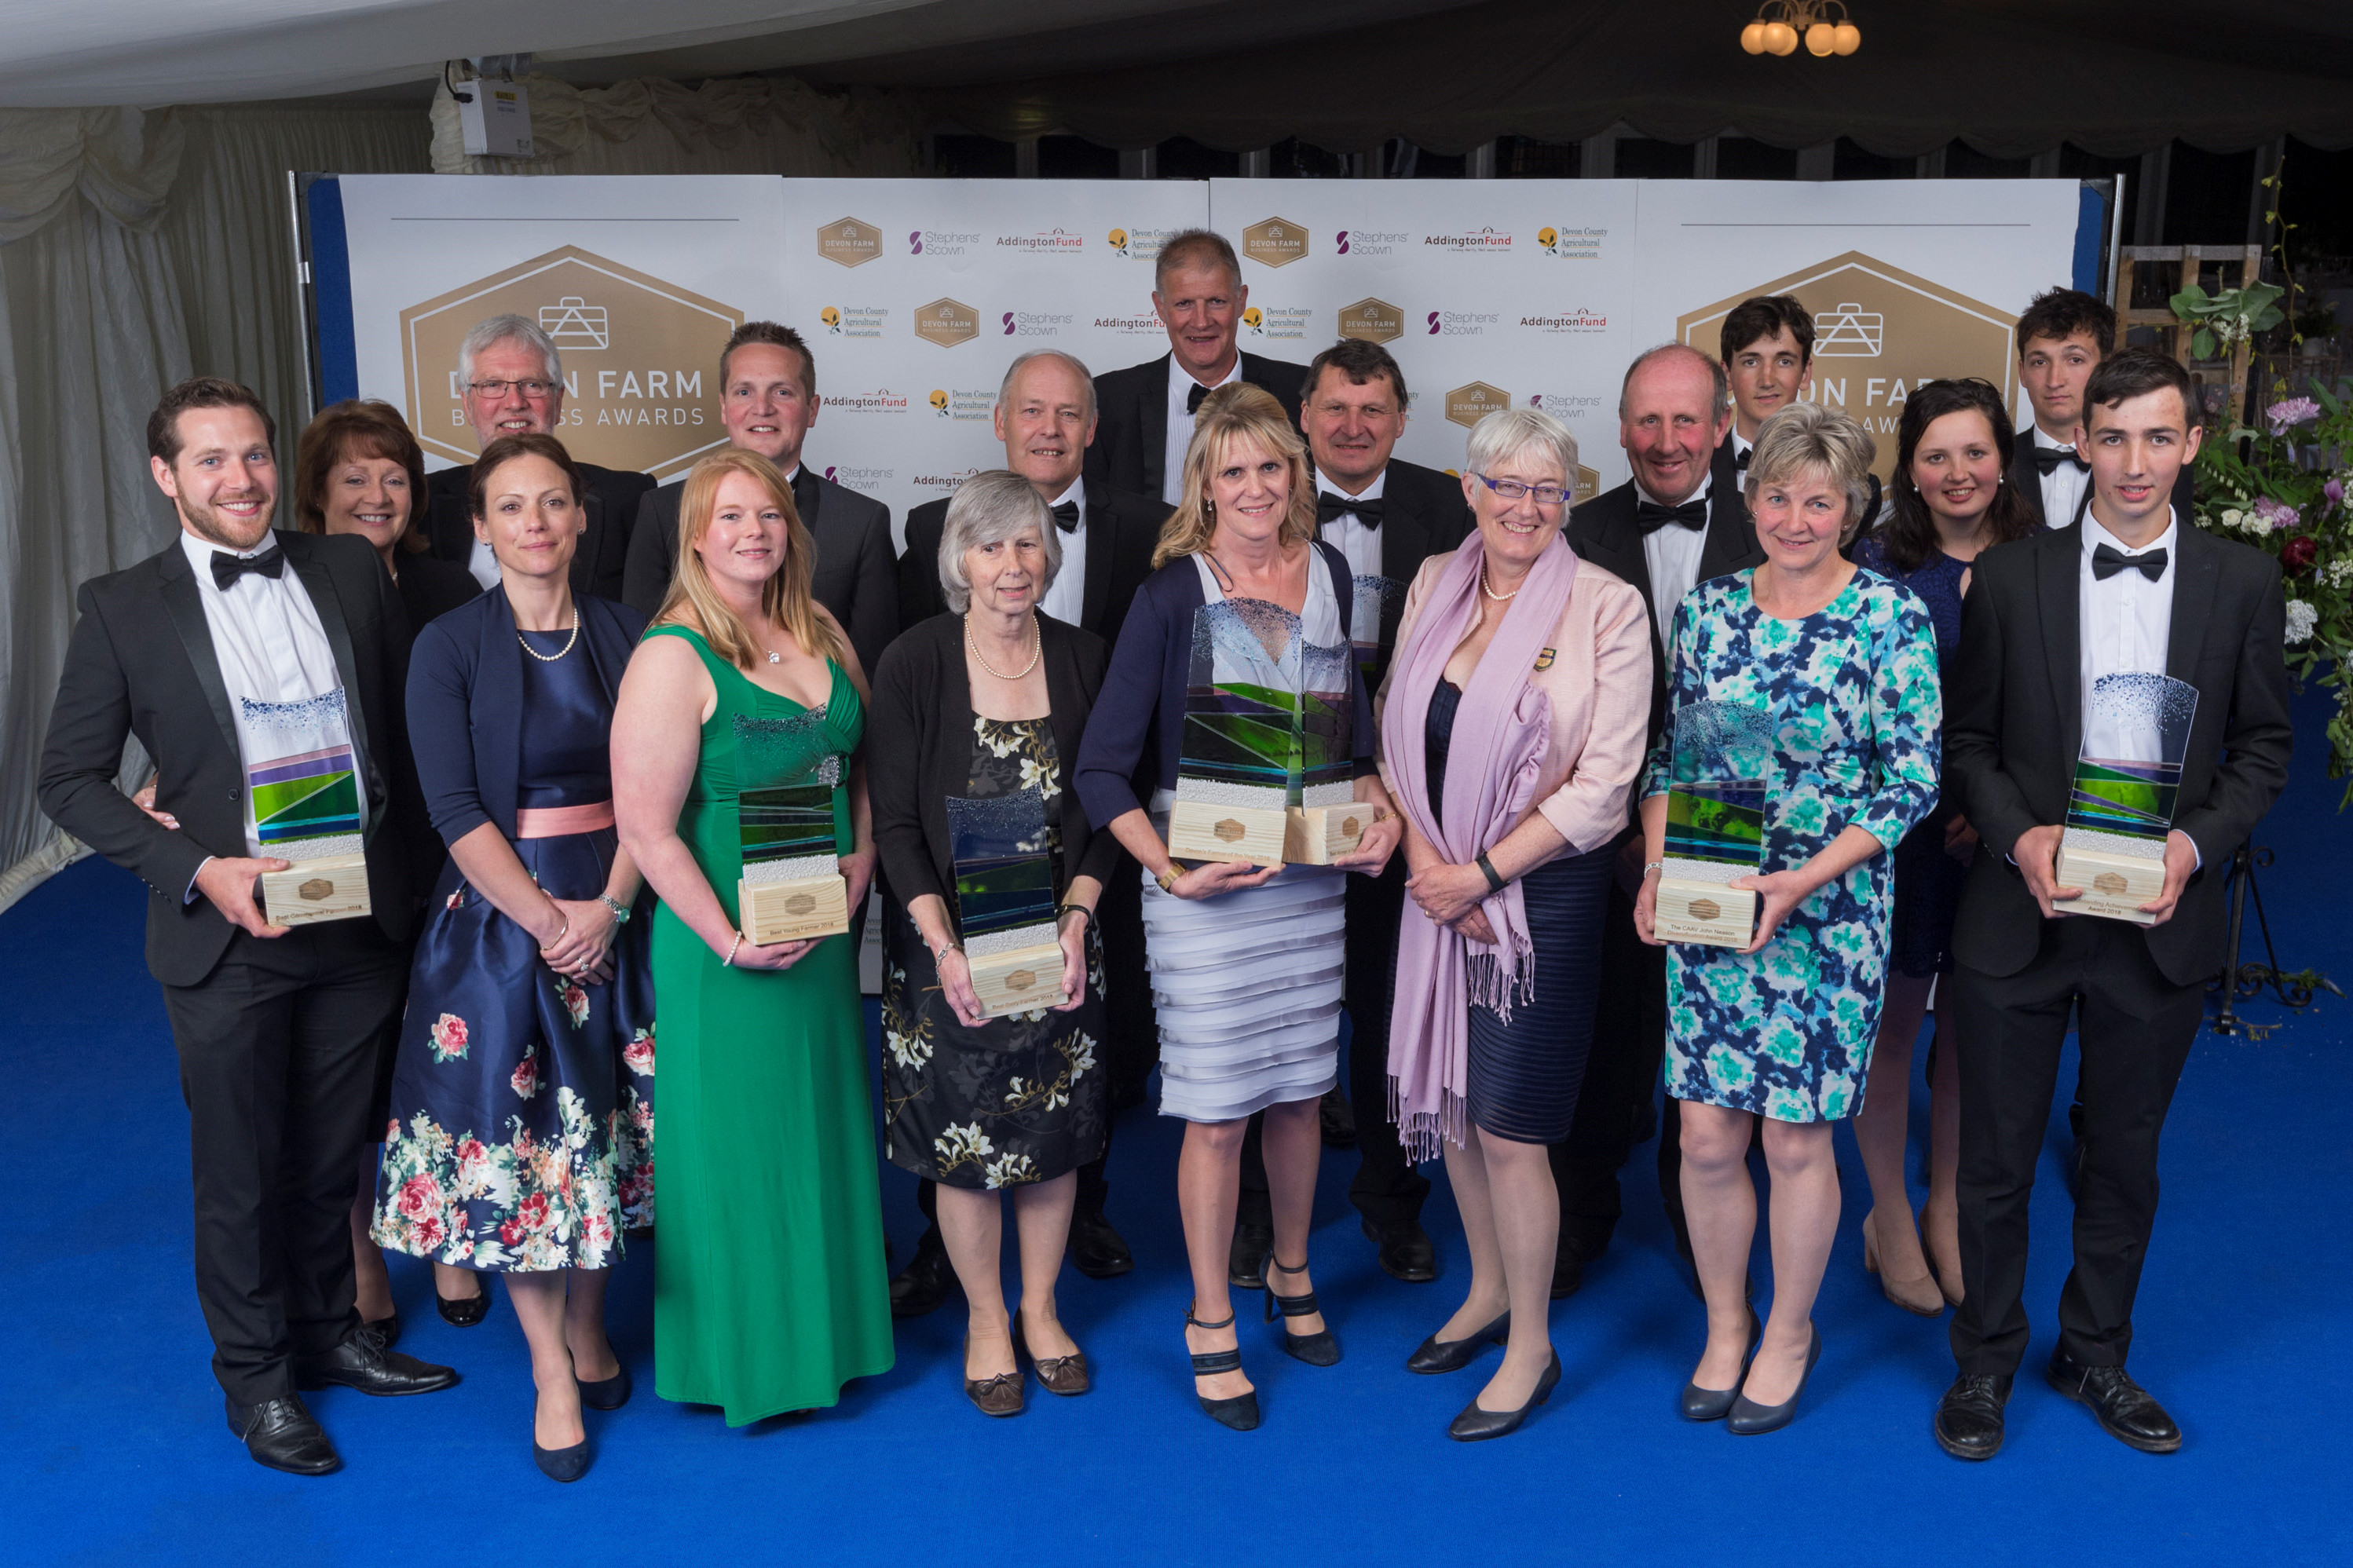 Winners of the 2018 Devon Farm Business Awards, with overall winner Jacqui Lanning pictured centre with her 2 awards. Photos: Anne Ashford